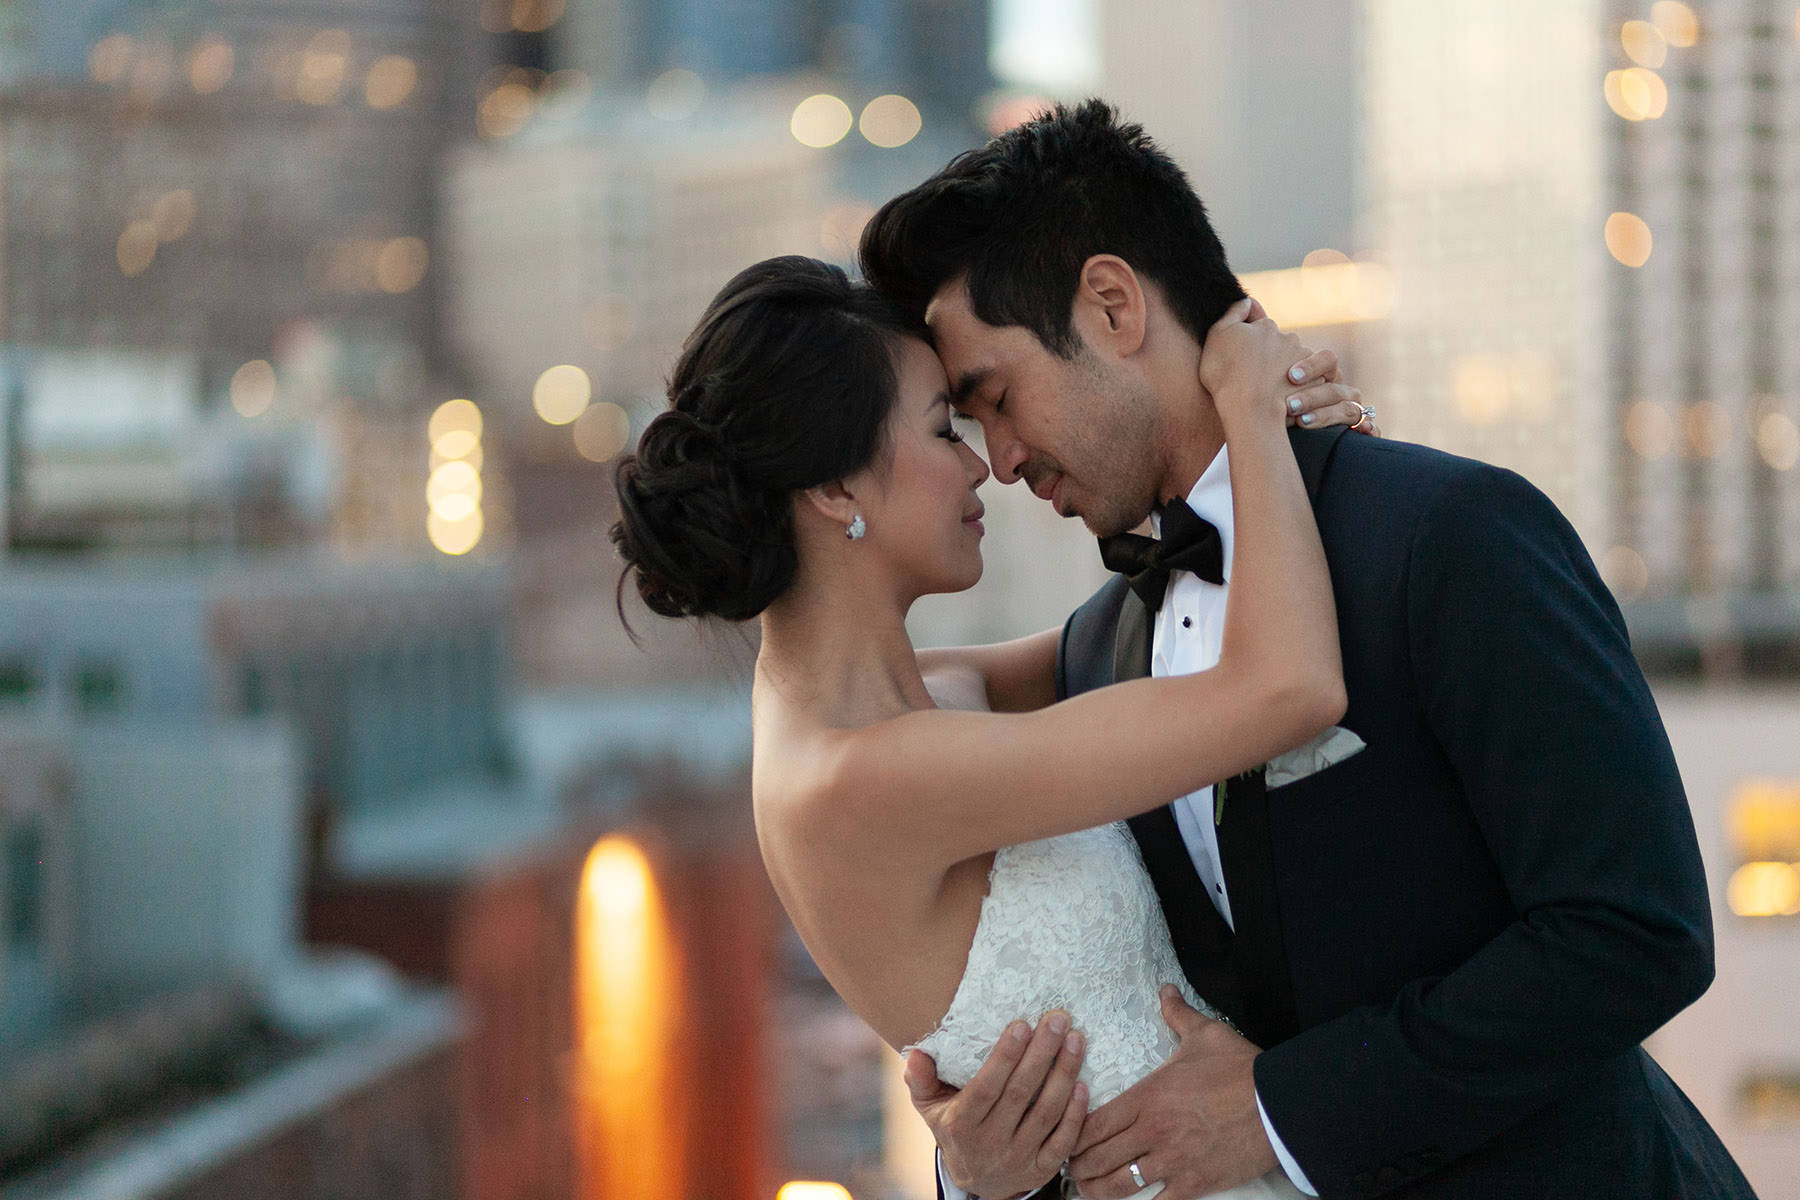 An unedited photo of a wedding couple that stands on a rooftop and holds each other closely.